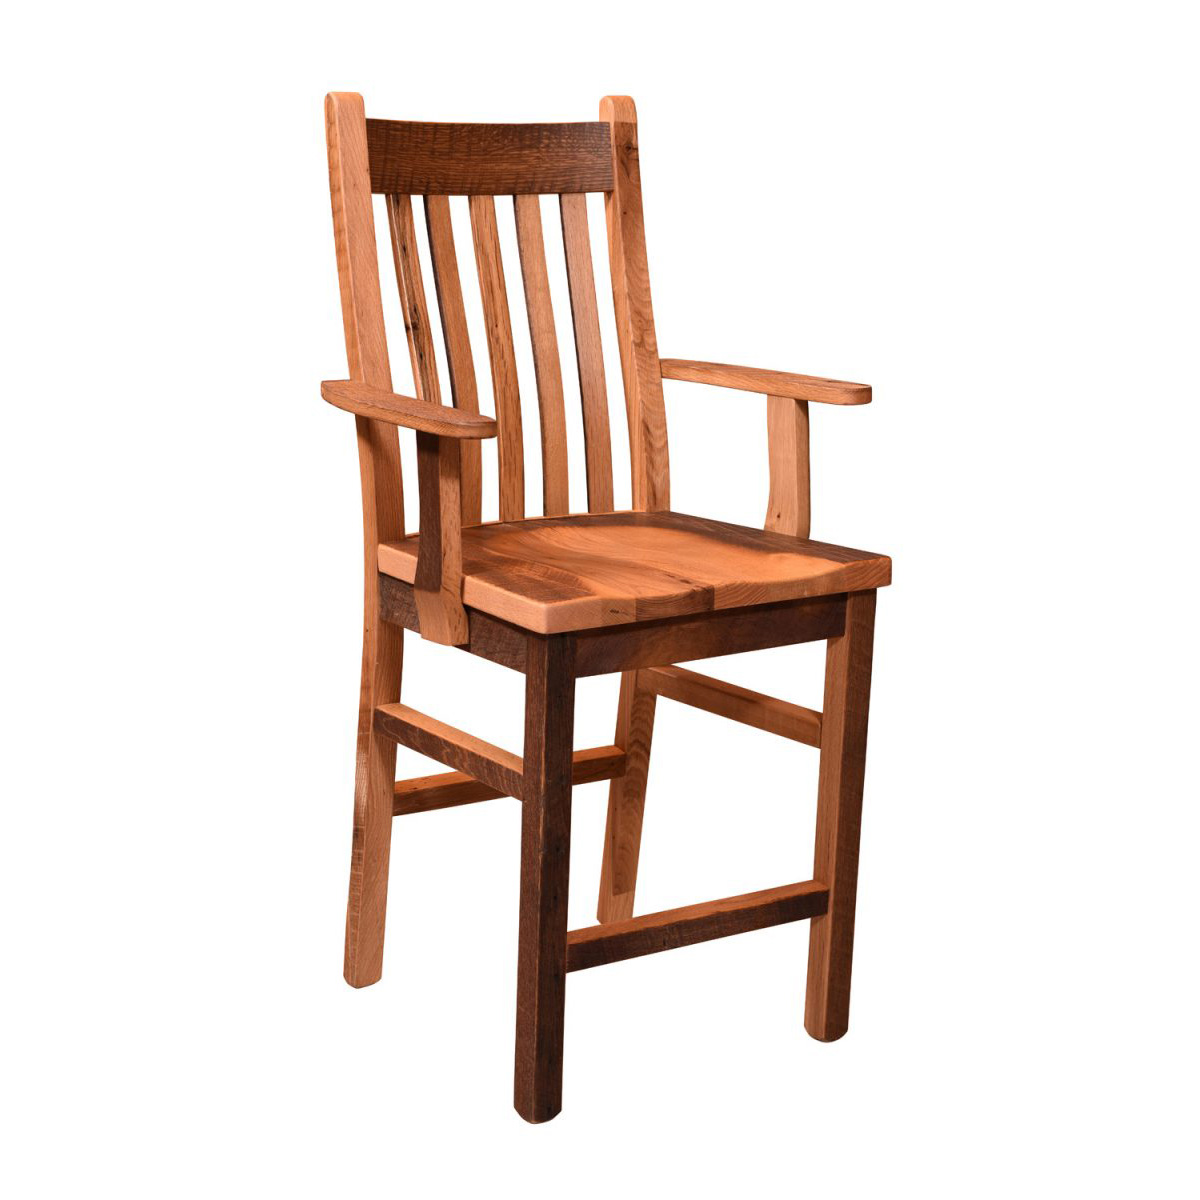 Mission Chairs Barnwood Mission Bar Arm Chair Amish Crafted Furniture